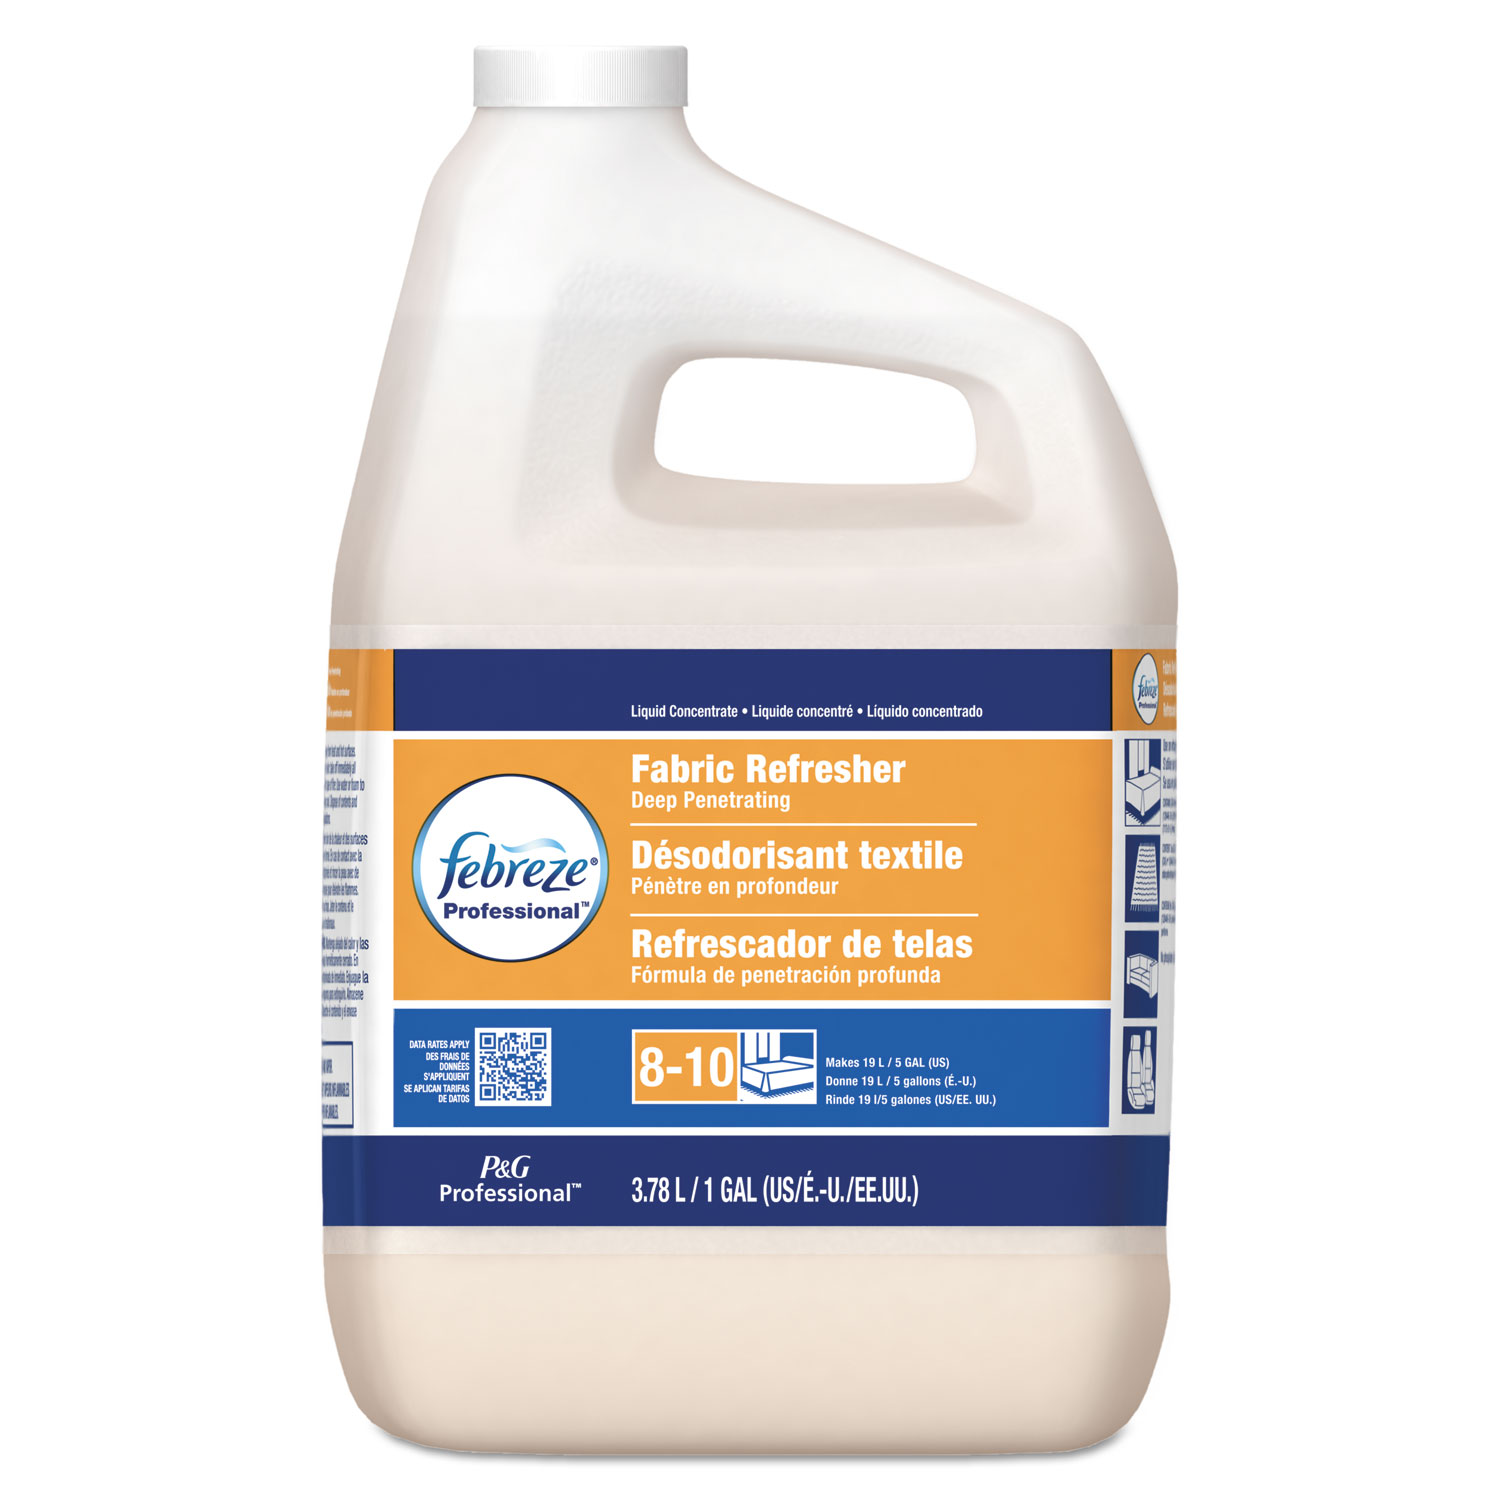 Professional Deep Penetrating Fabric Refresher, 5X Concentrate, 1 gal, 2/Carton